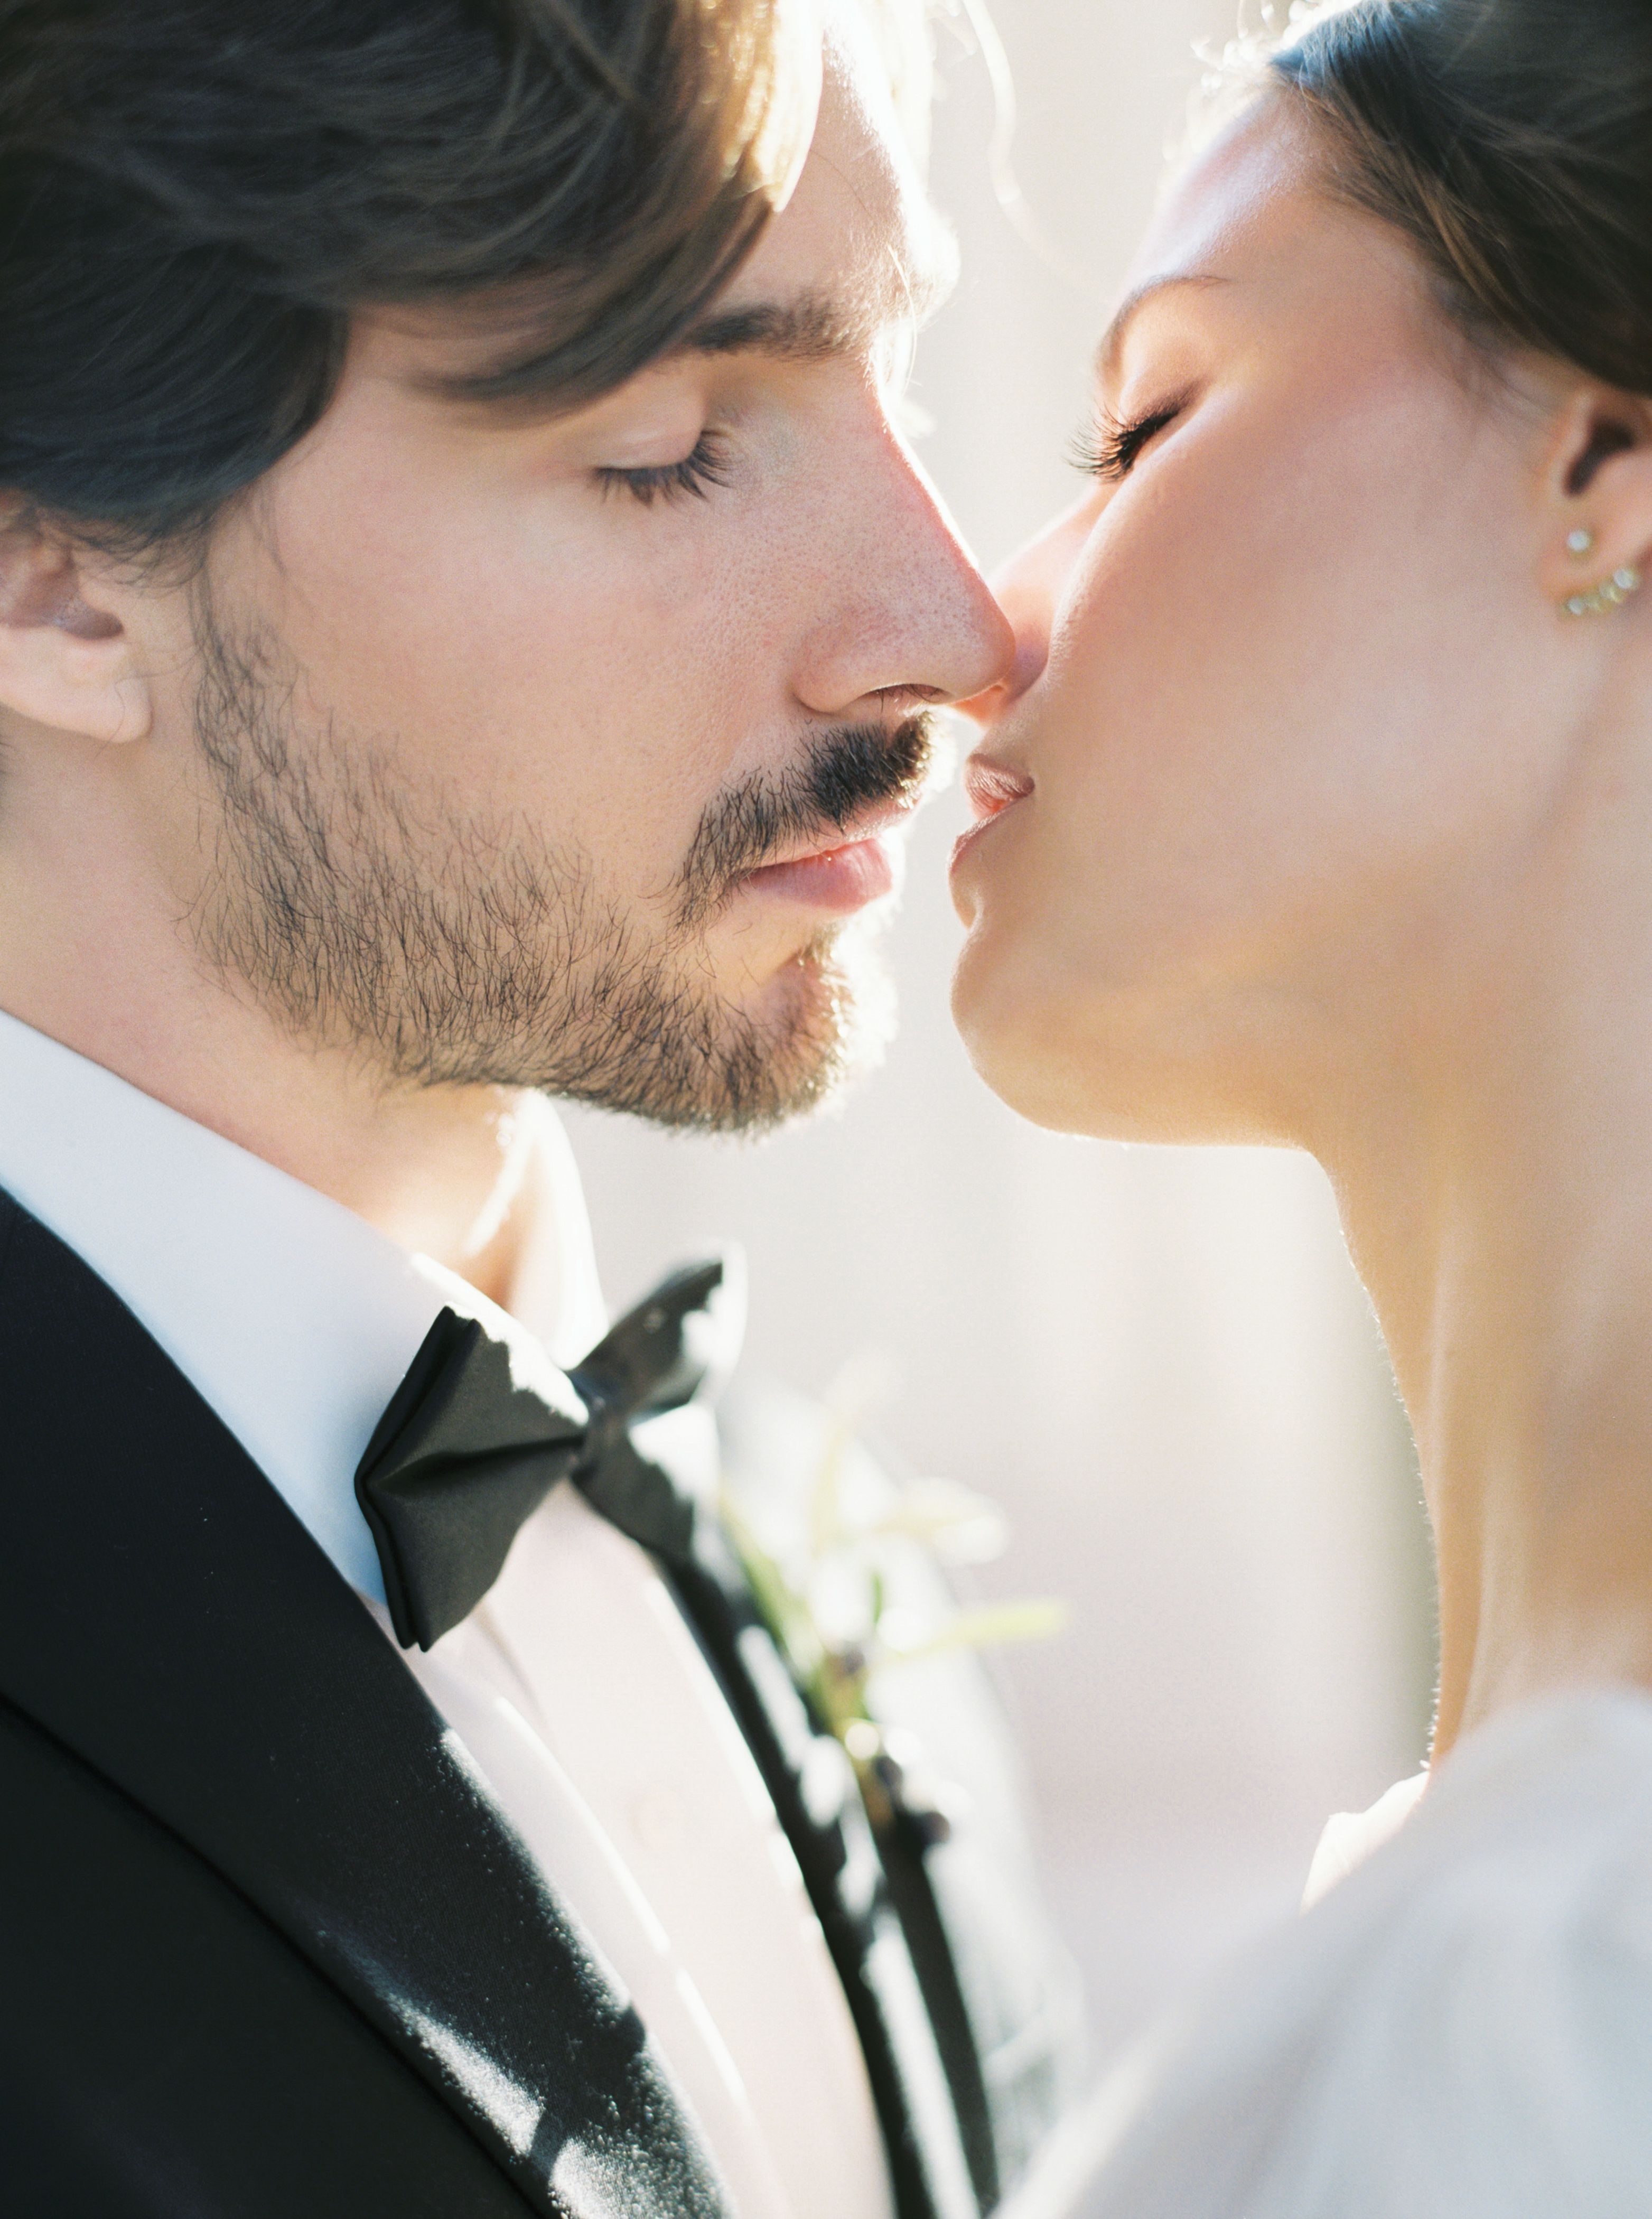 Pin On Brides And Grooms